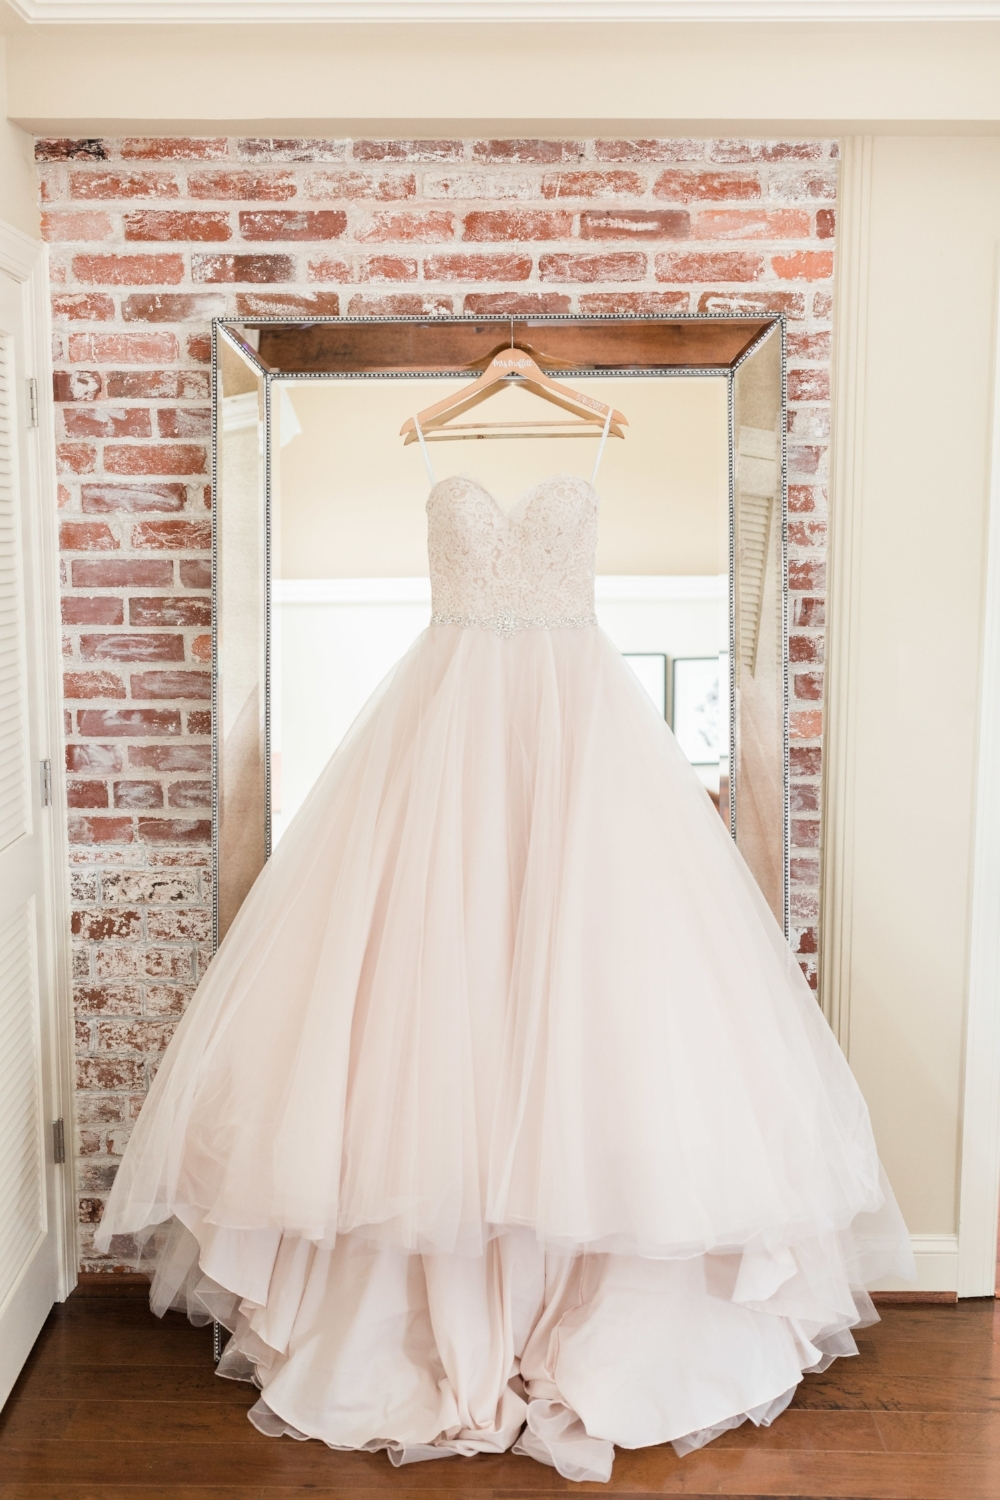 Candace's wedding dress was by Allure Romance Collection.